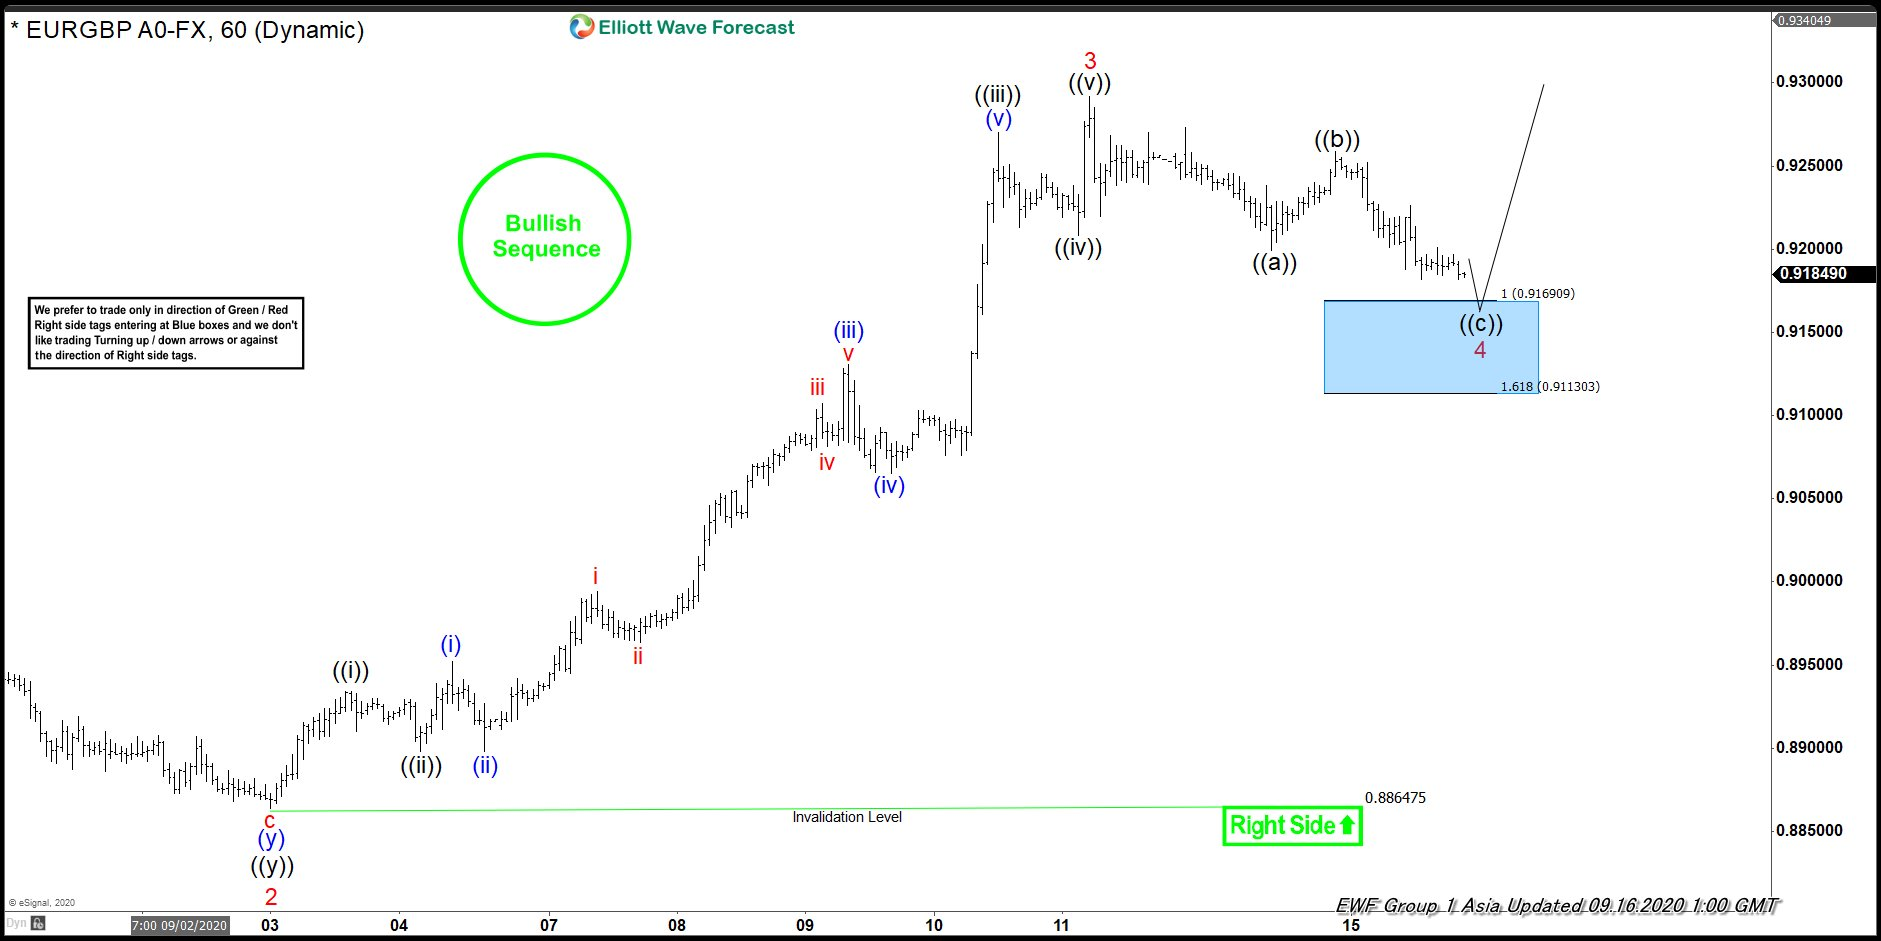 Elliott Wave View: Bullish Sequence in EURGBP Favors More Upside